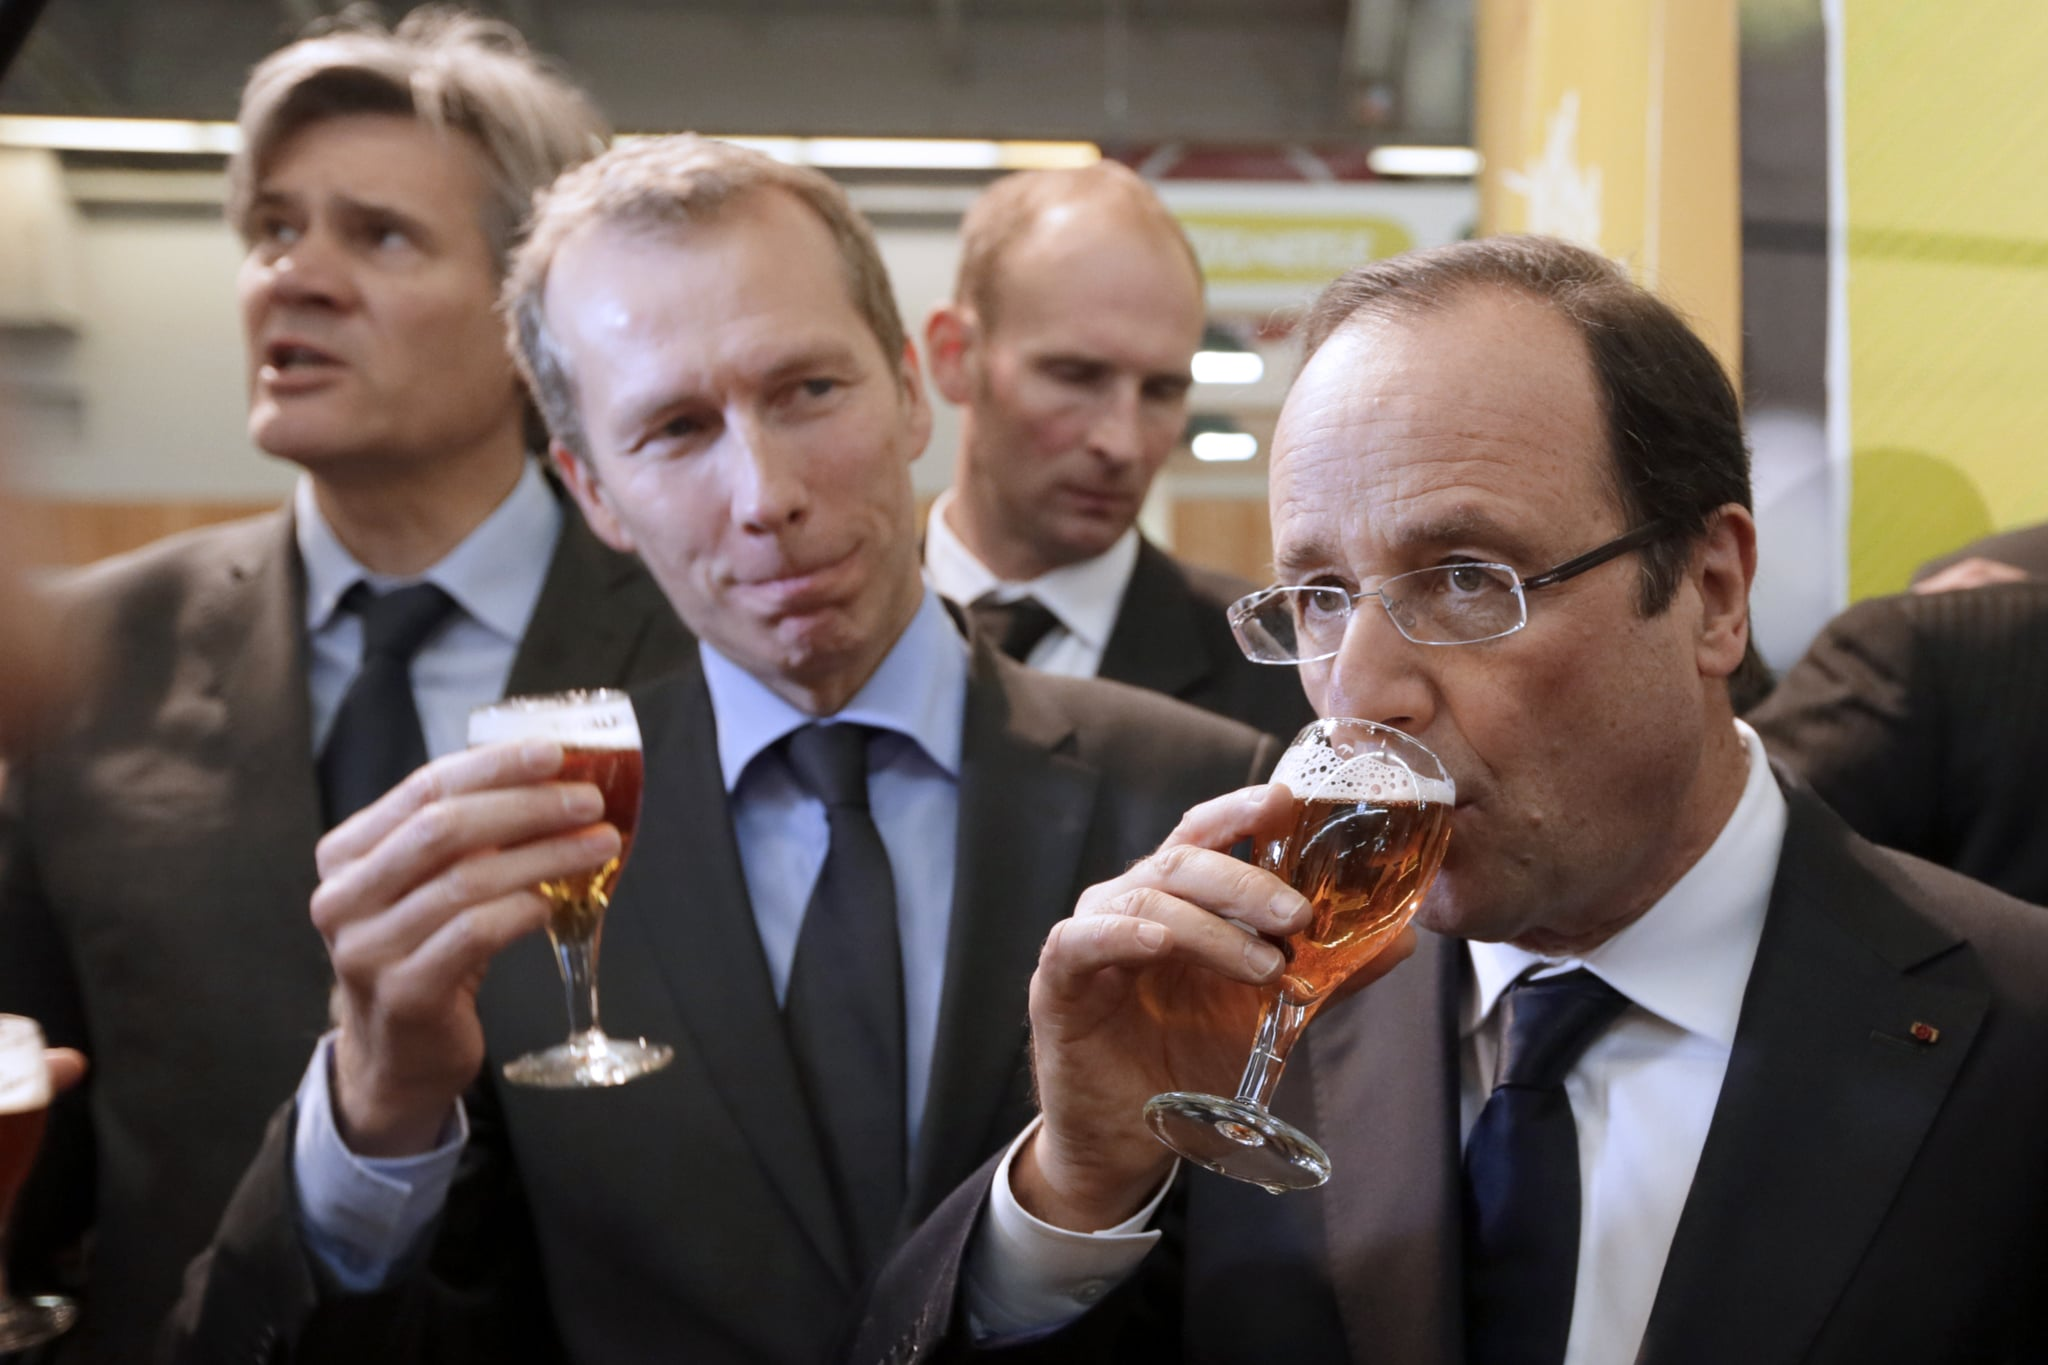 French President Francois Hollande drank a beer during an agriculture fair in Paris in 2013.